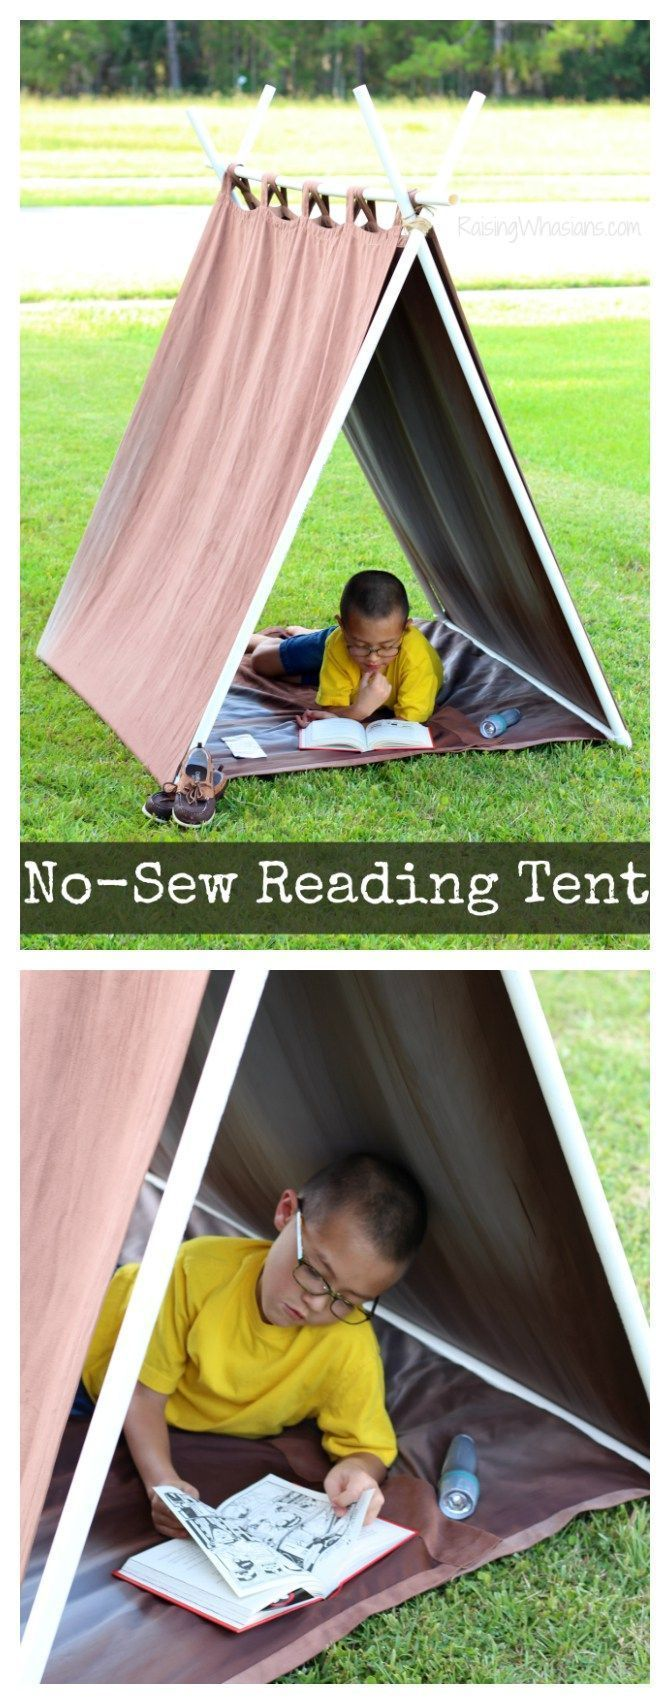 No-Sew Reading Tent for Kids images